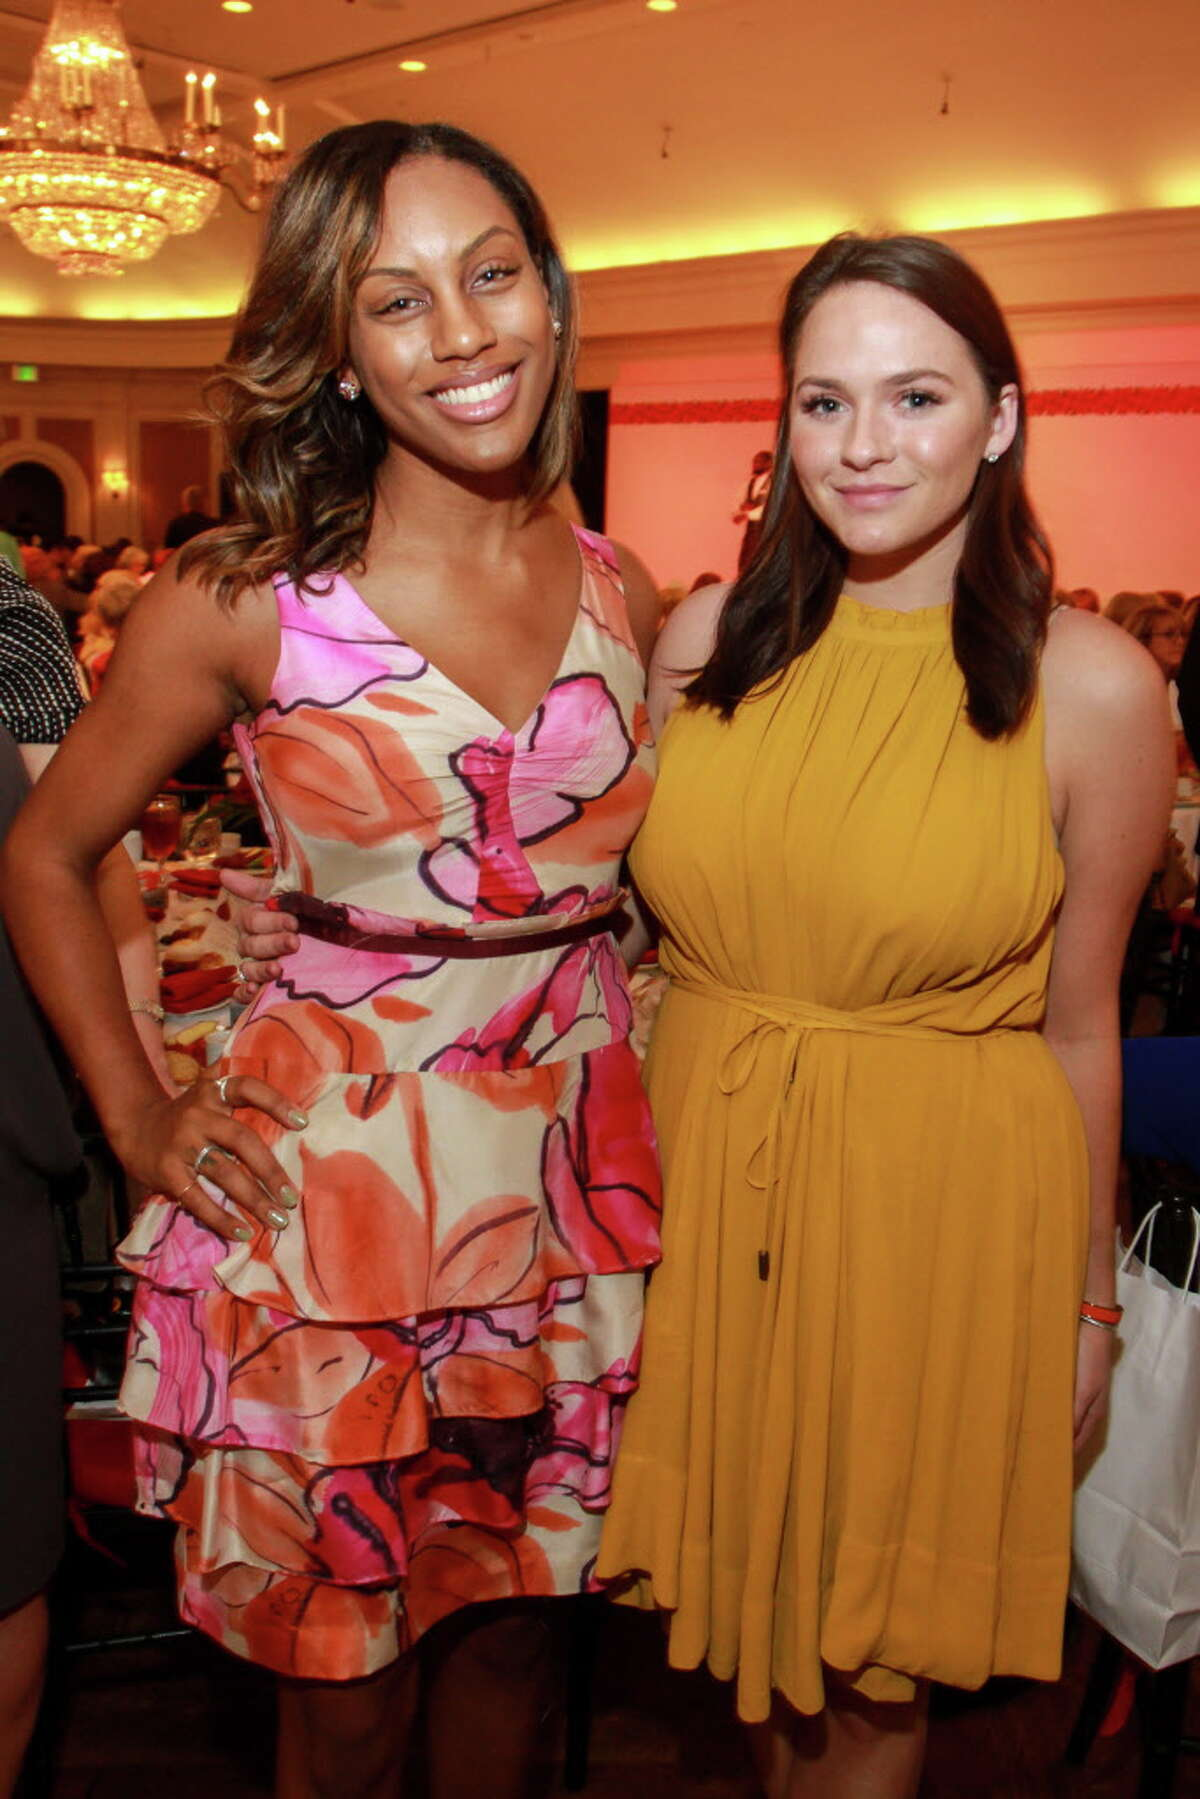 Kara Smith, left, and Hannah Swiggard at the annual Chic Boutique and runway fashion show luncheon benefiting the Salvation Army. (For the Chronicle/Gary Fountain, April 12, 2016)